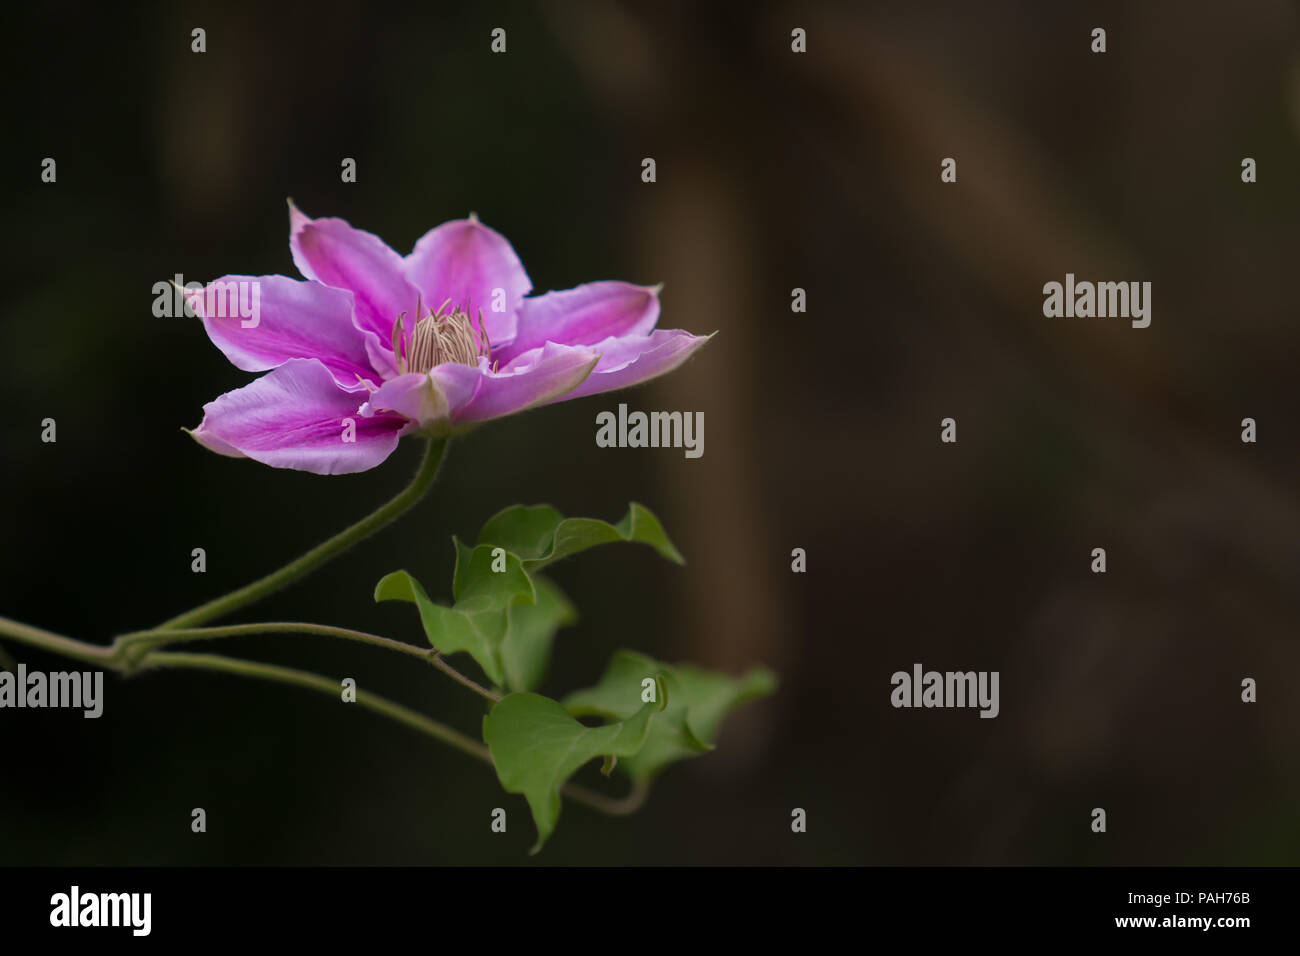 Violet flower with warm brown earthy background - Stock Image